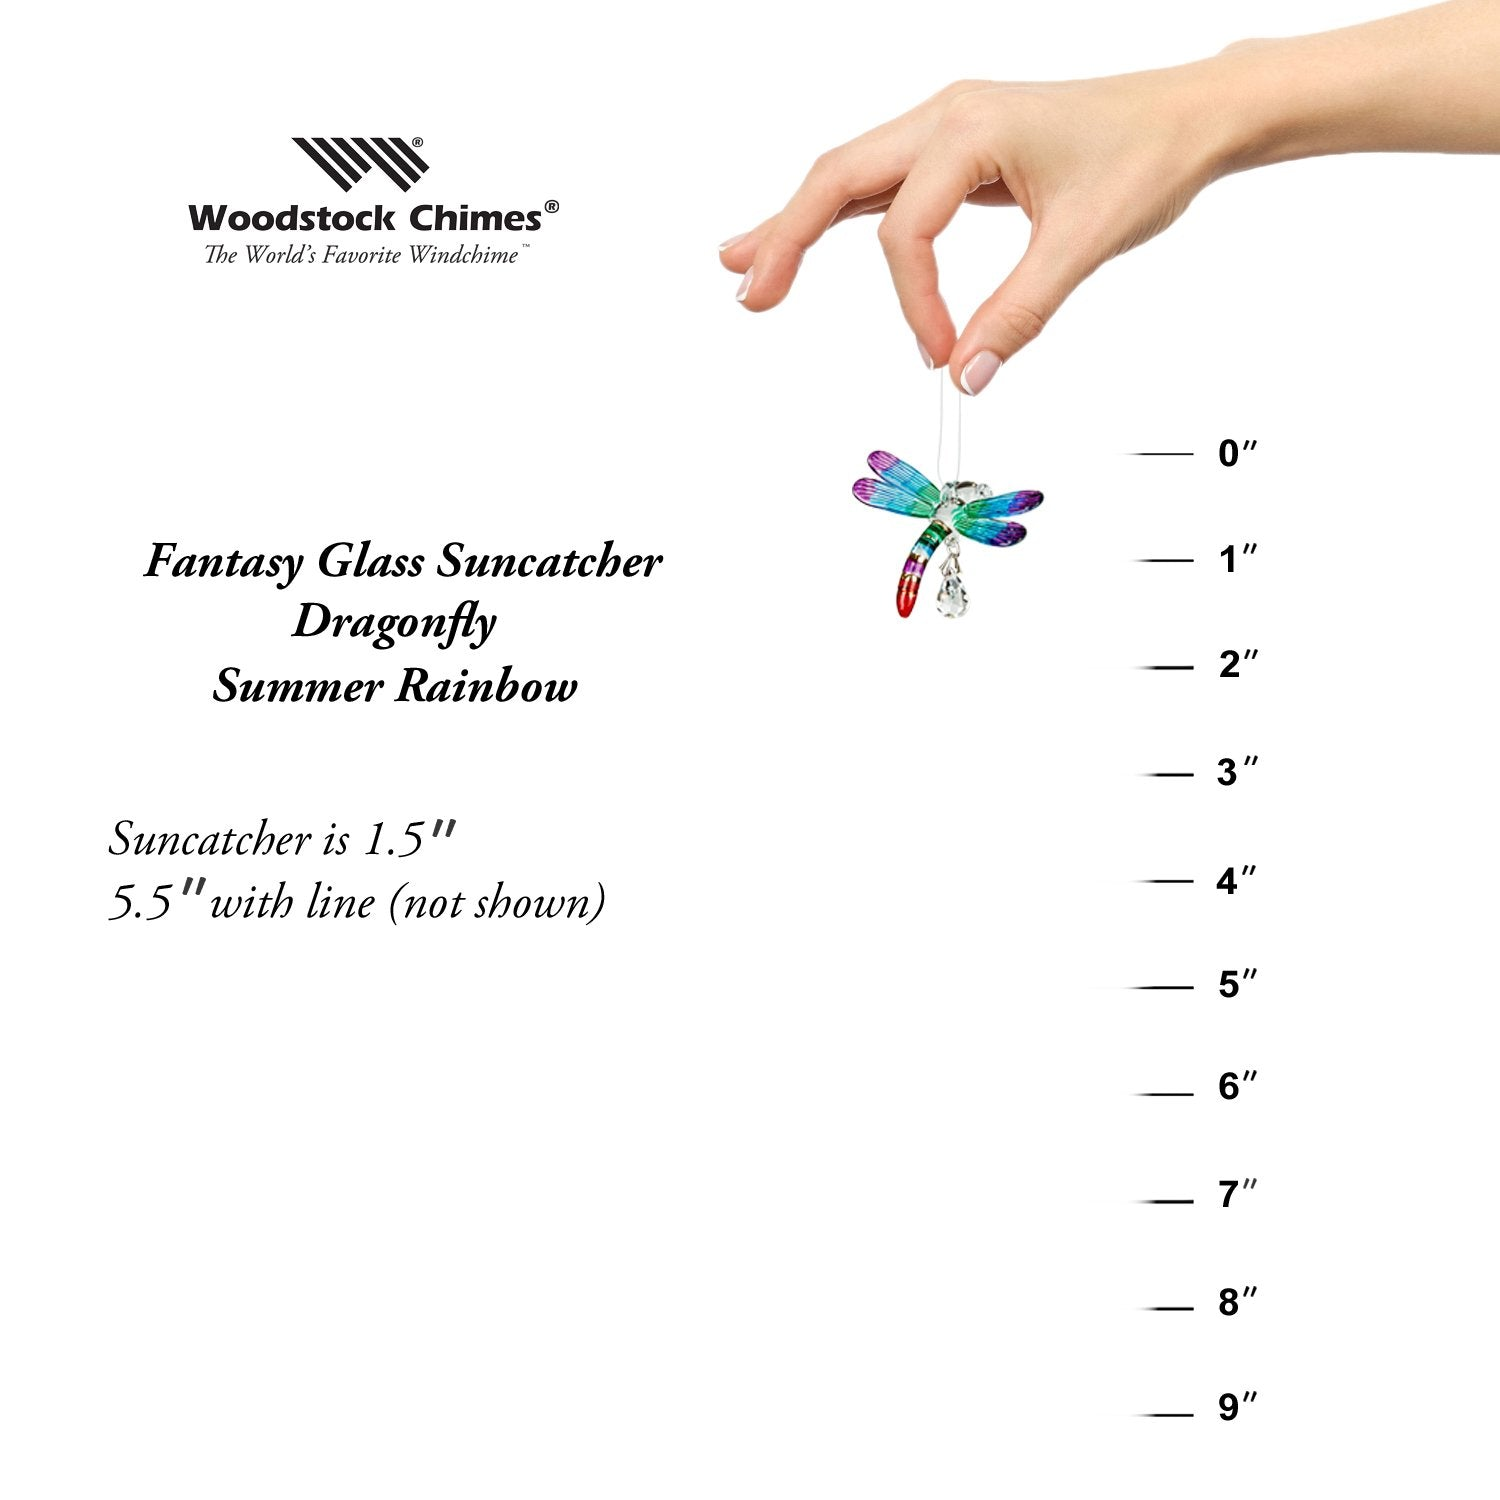 Fantasy Glass Suncatcher - Dragonfly, Summer Rainbow proportion image